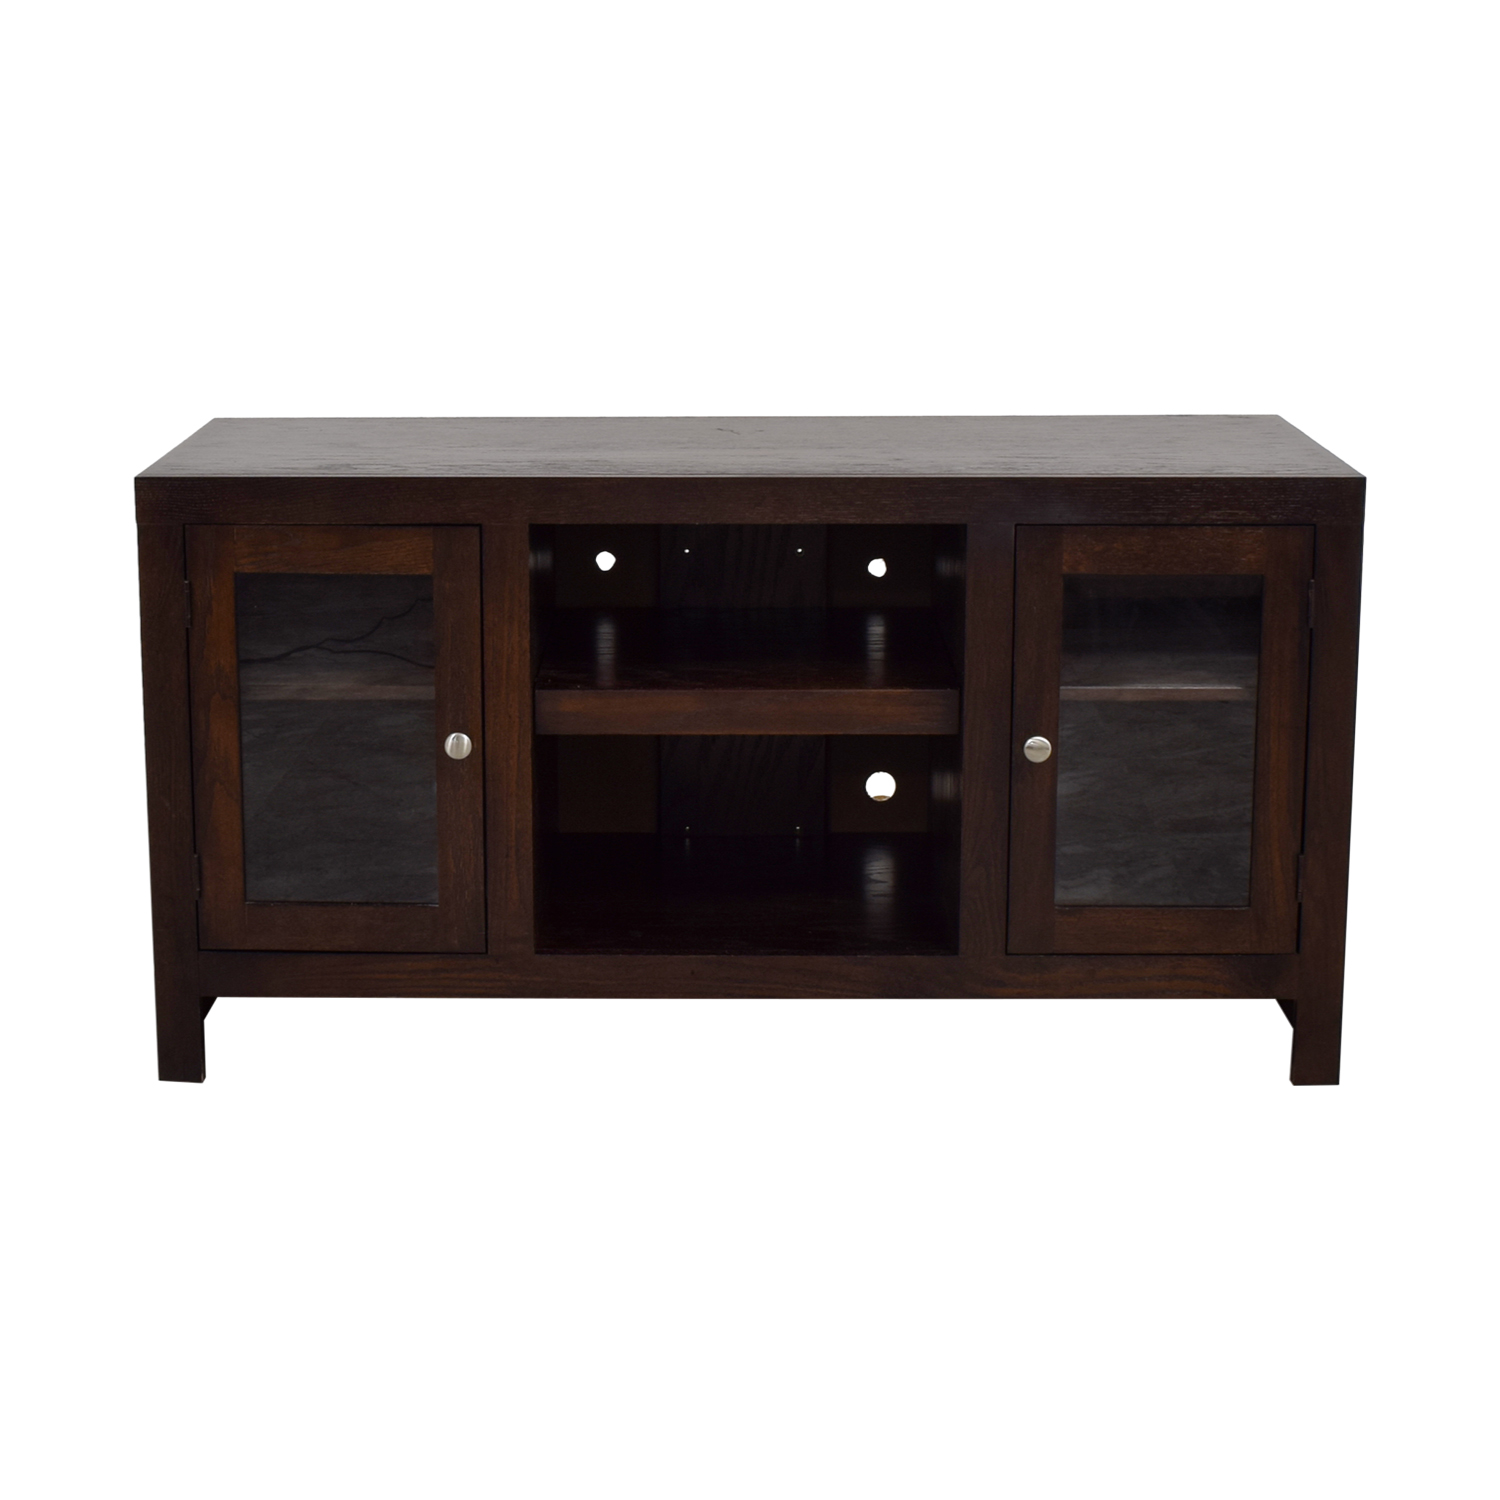 Golden Oak Golden Oak Del Mar TV Console nyc